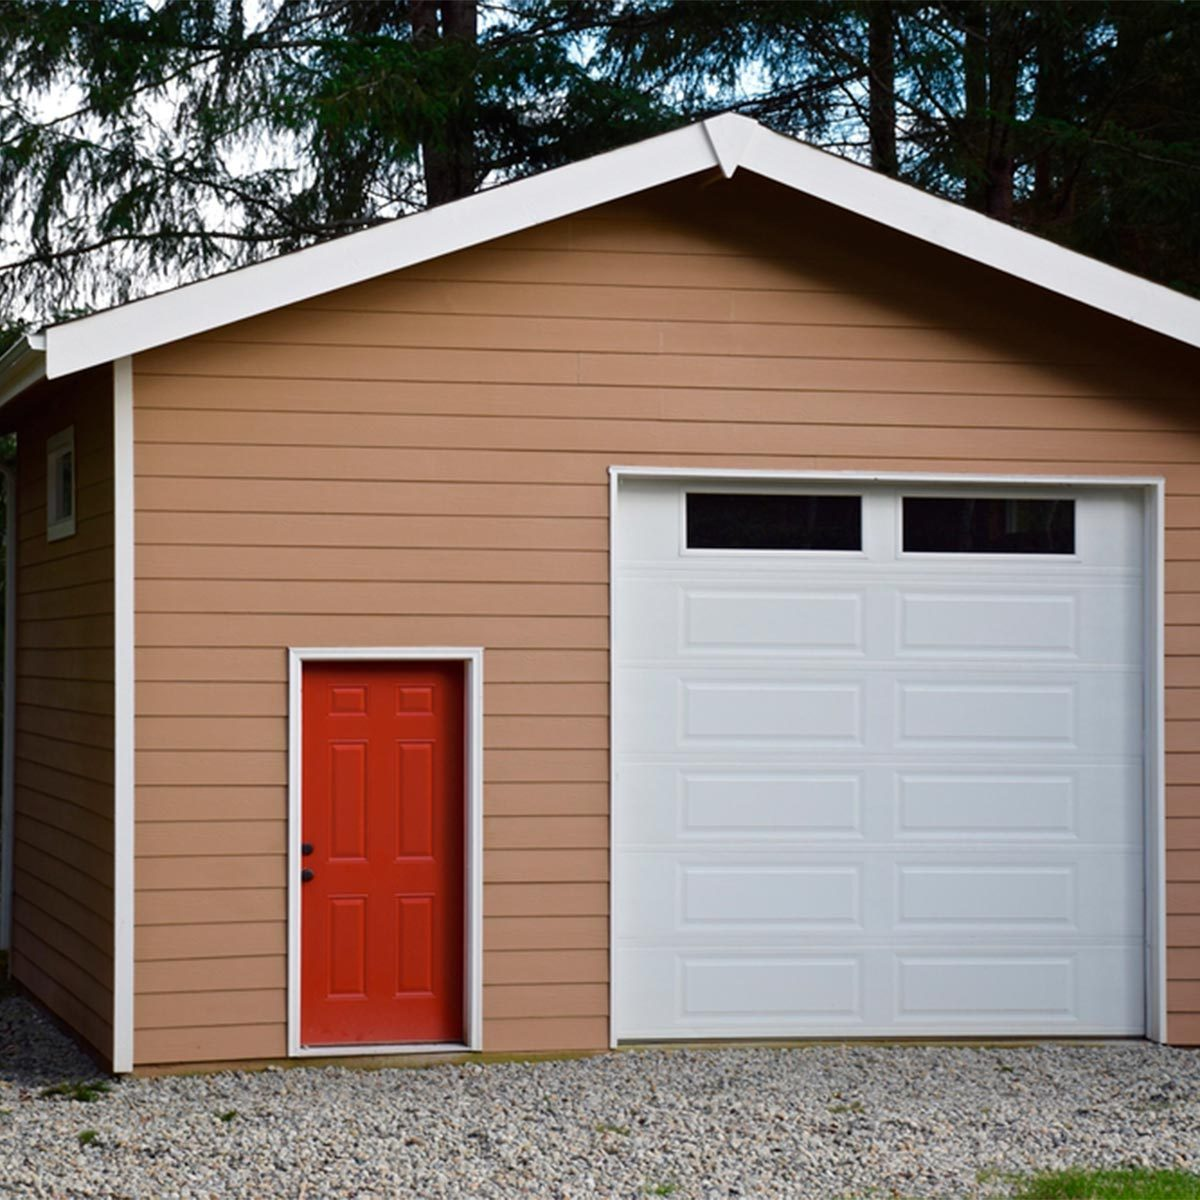 shed with red door